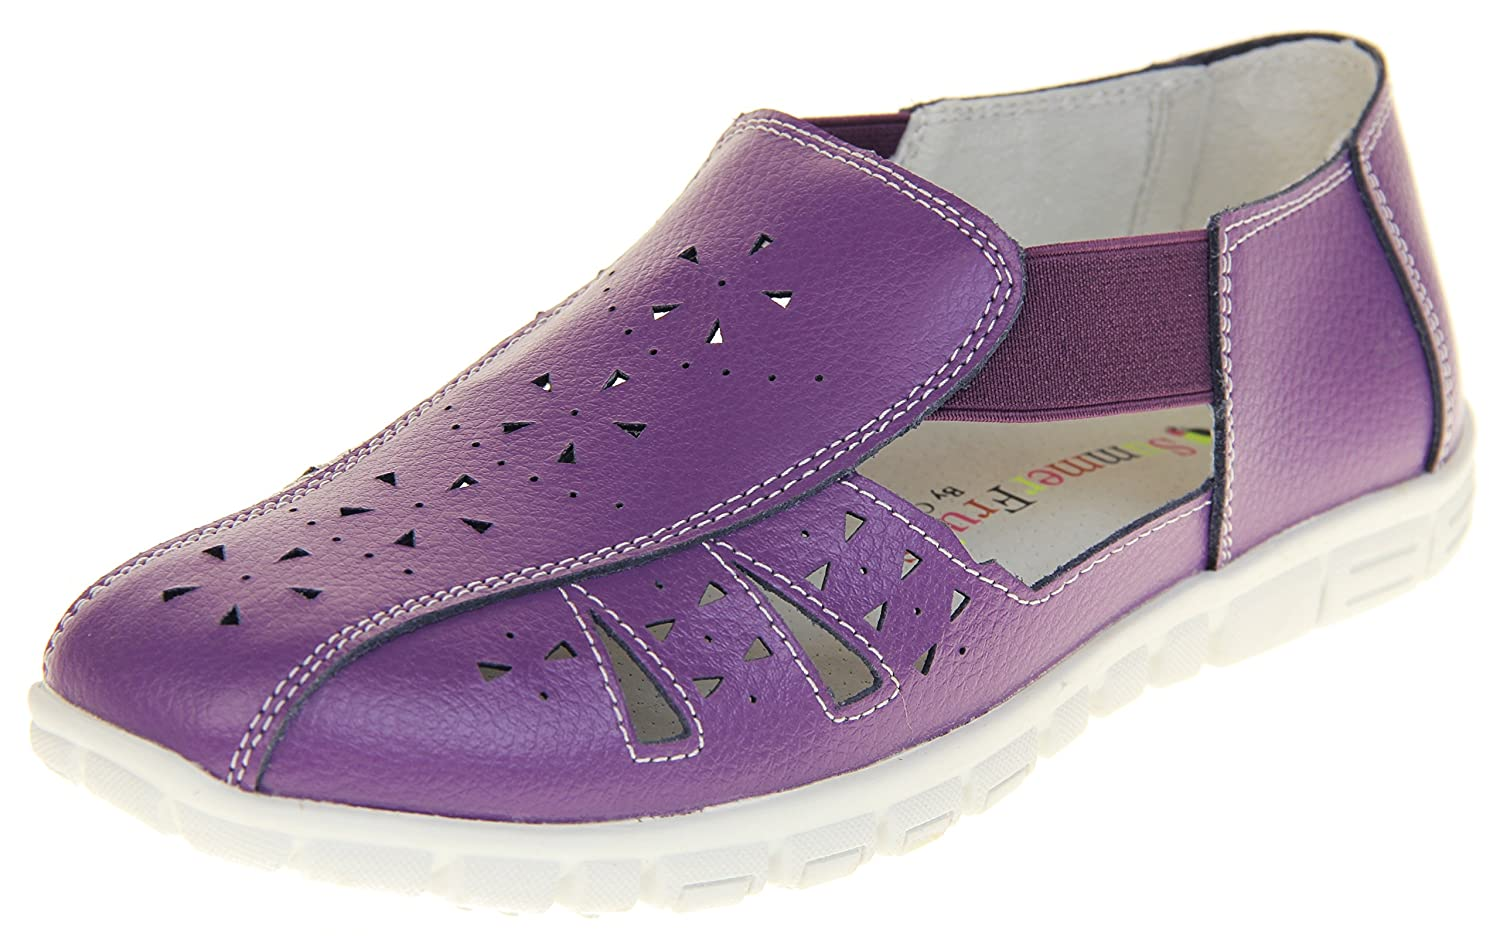 Coolers Womens Leather Wide Fit EEE Sandals Shoes B07D6RYJ7N 7 B(M) US|Plum